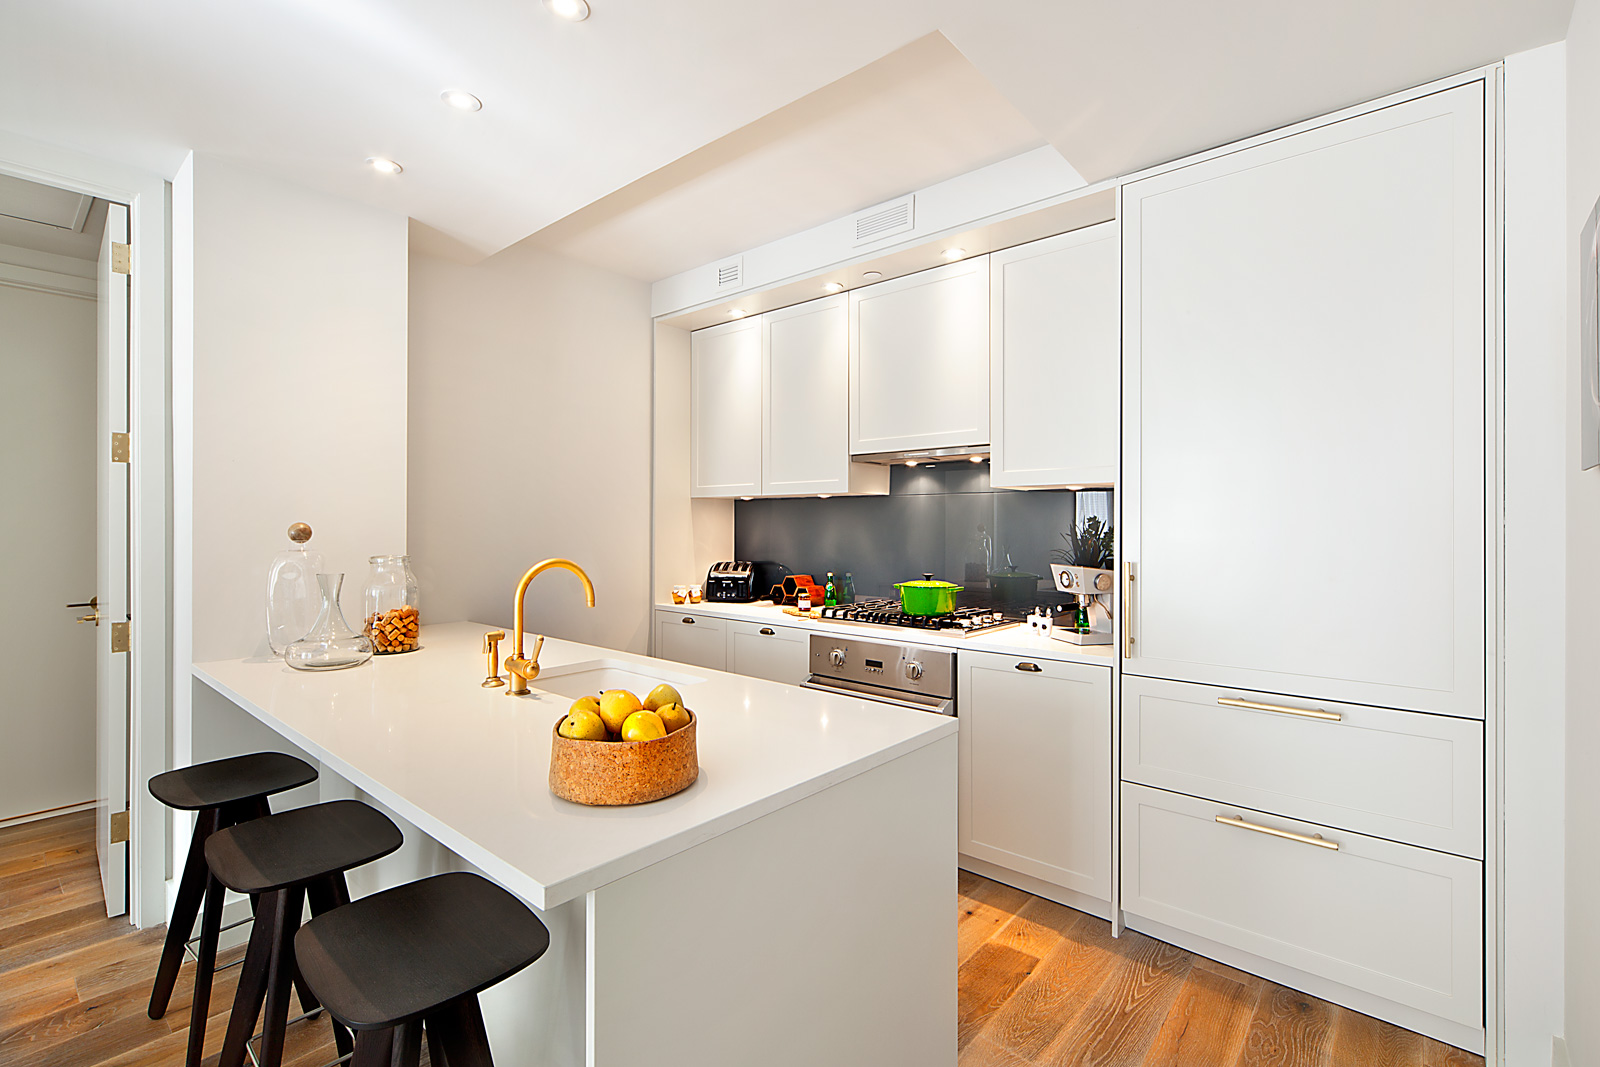 93 worth st 1101 new york ny 10013 core real estate